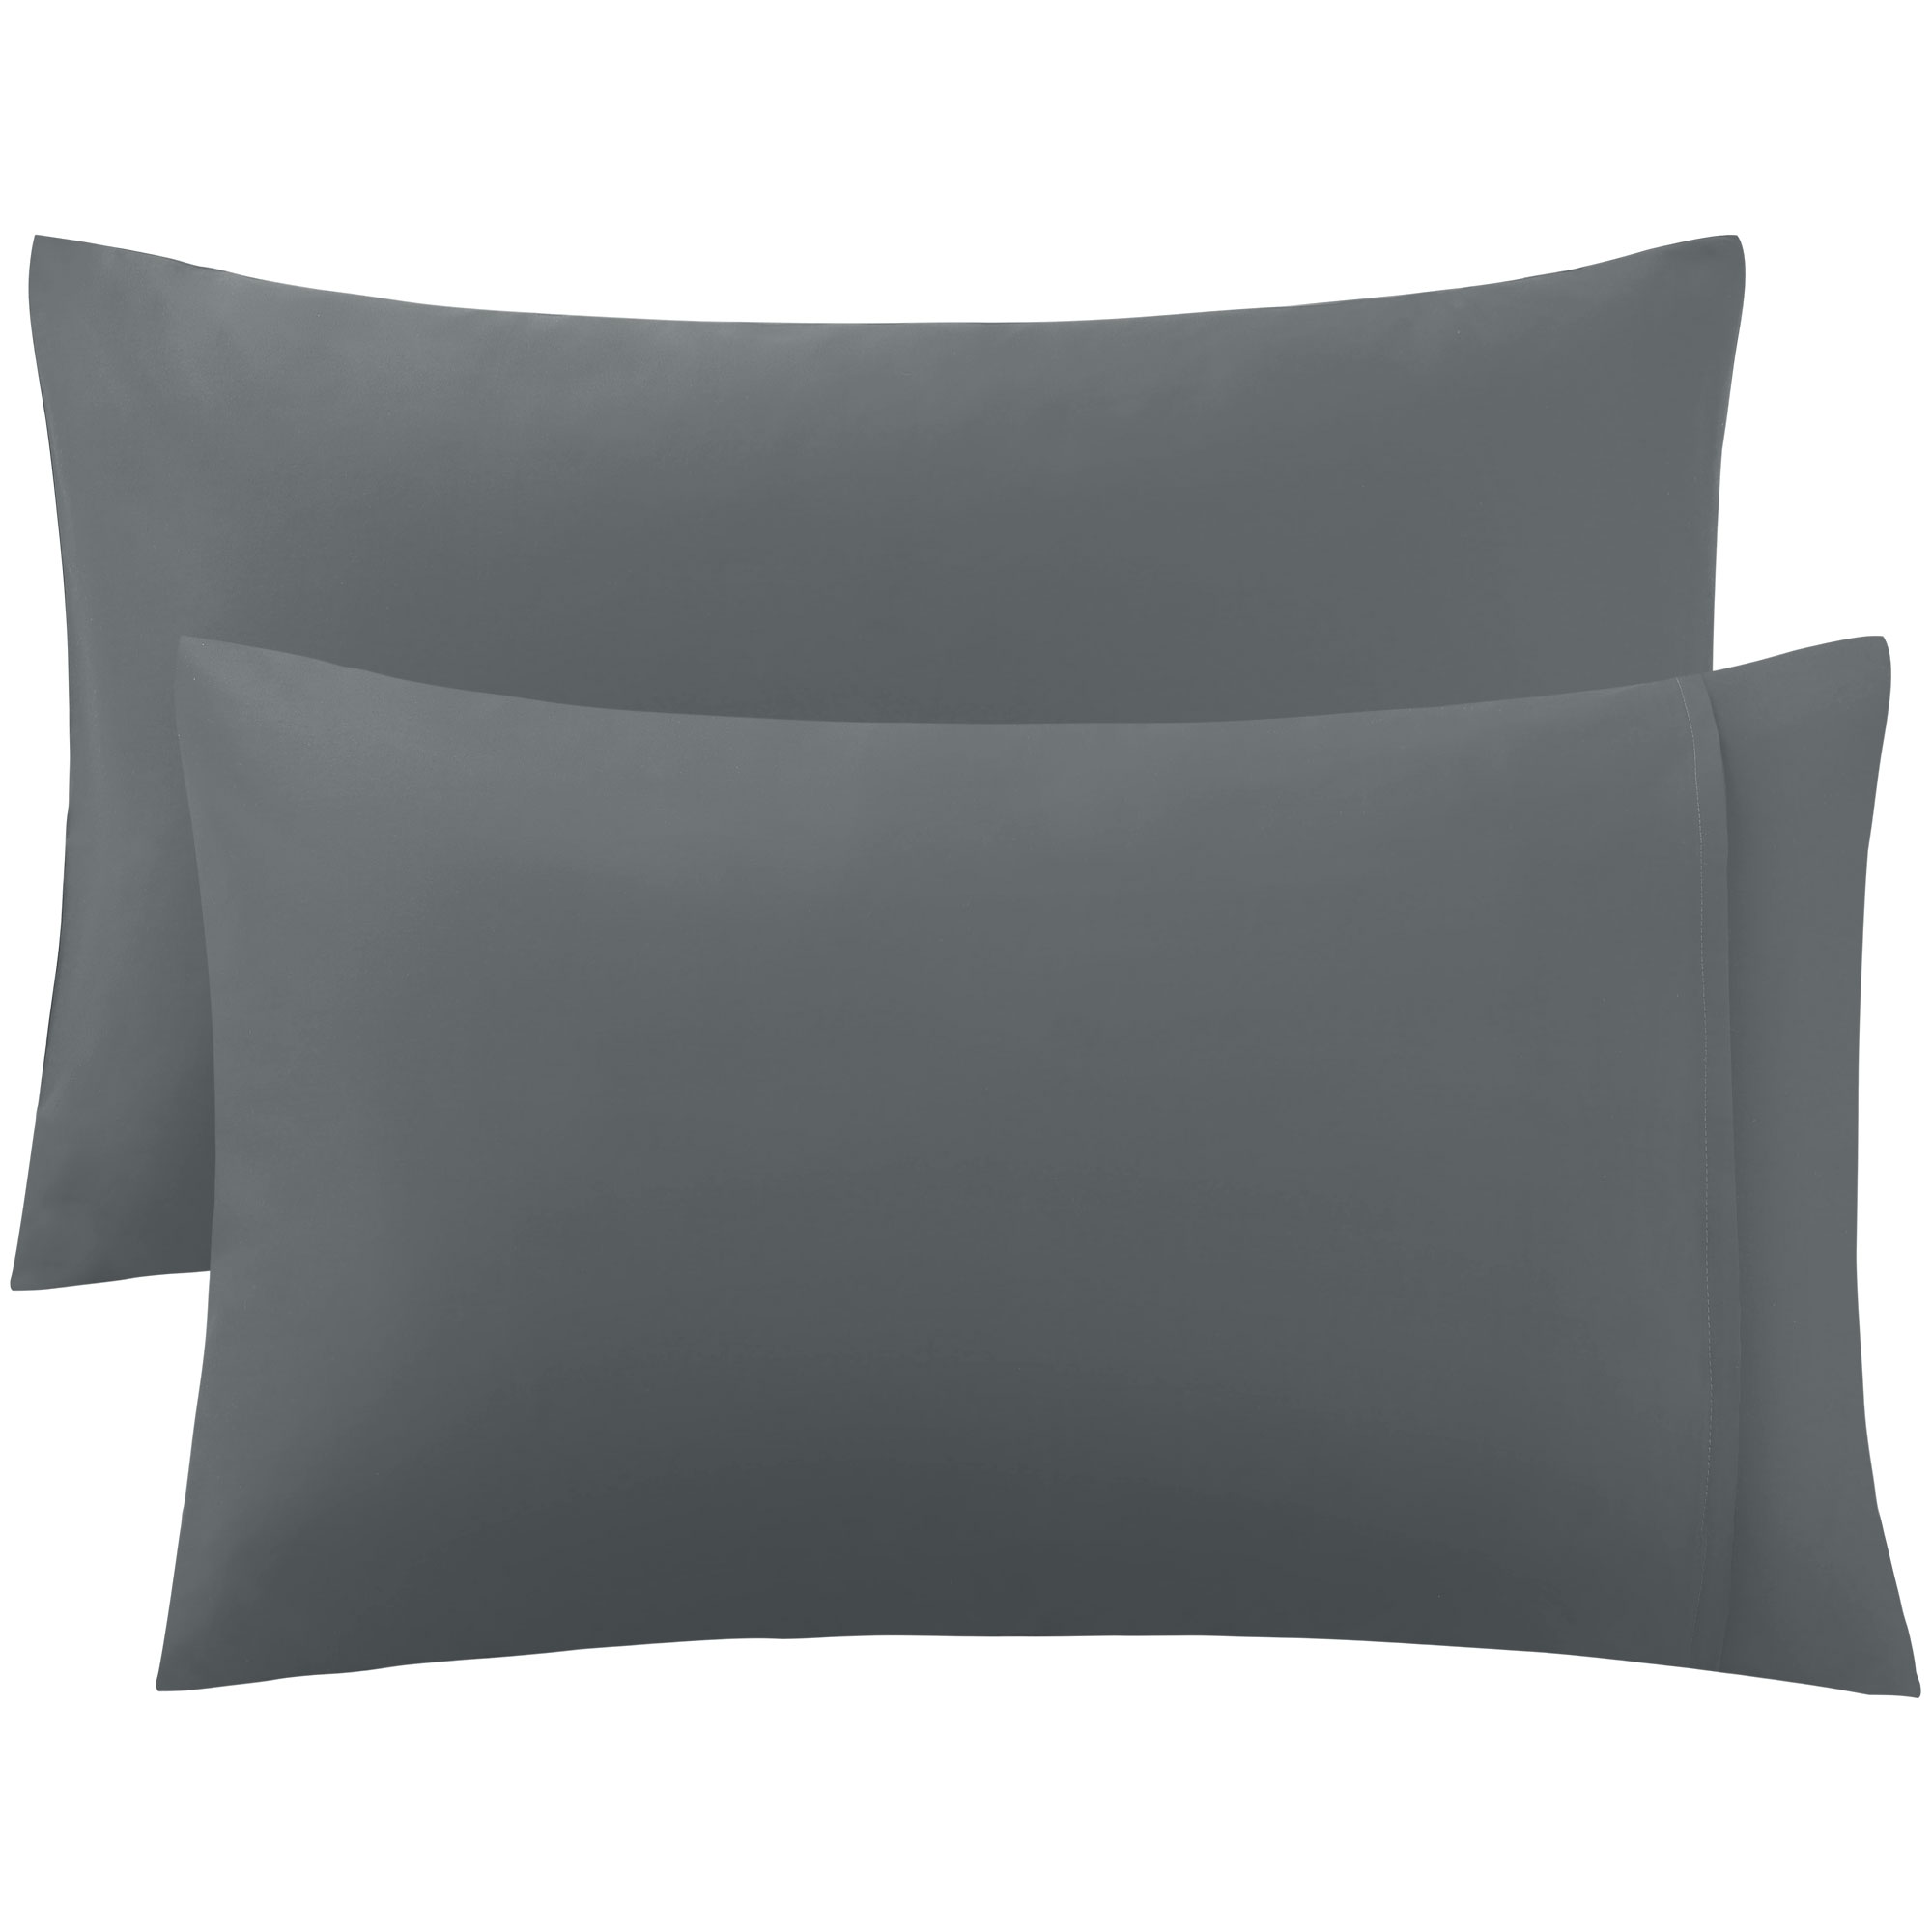 PiccoCasa 300 Thread Count Egyptian Cotton King Size Pillowcases Pillow Cases Covers Set of 2 Dark Gray